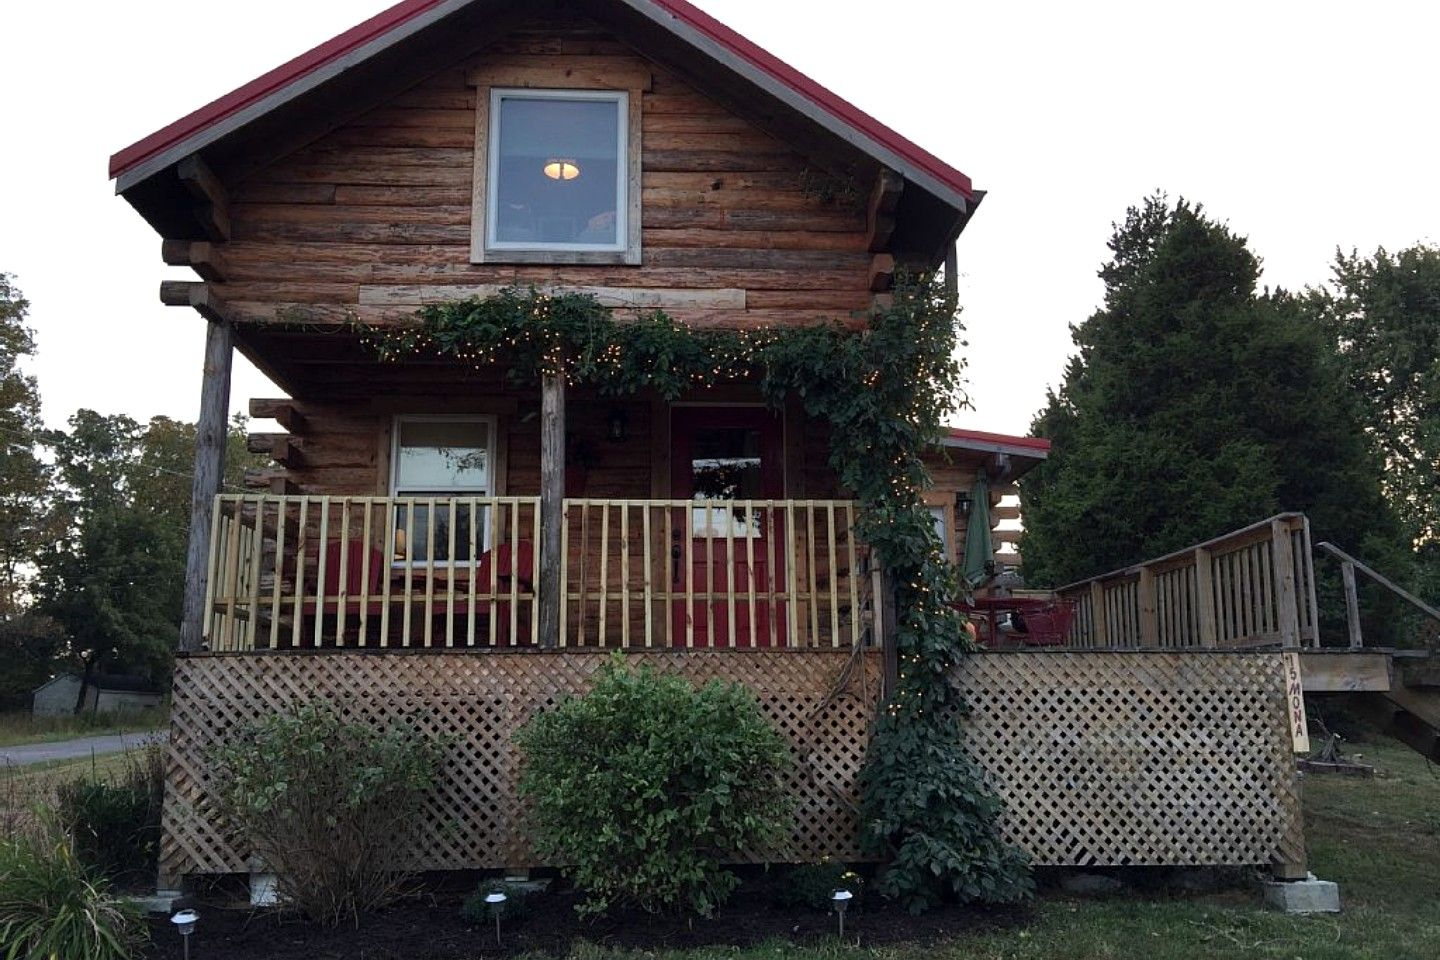 Idyllic Log Cabin Rental With Views Of Lake Of Egypt In Southern Illinois